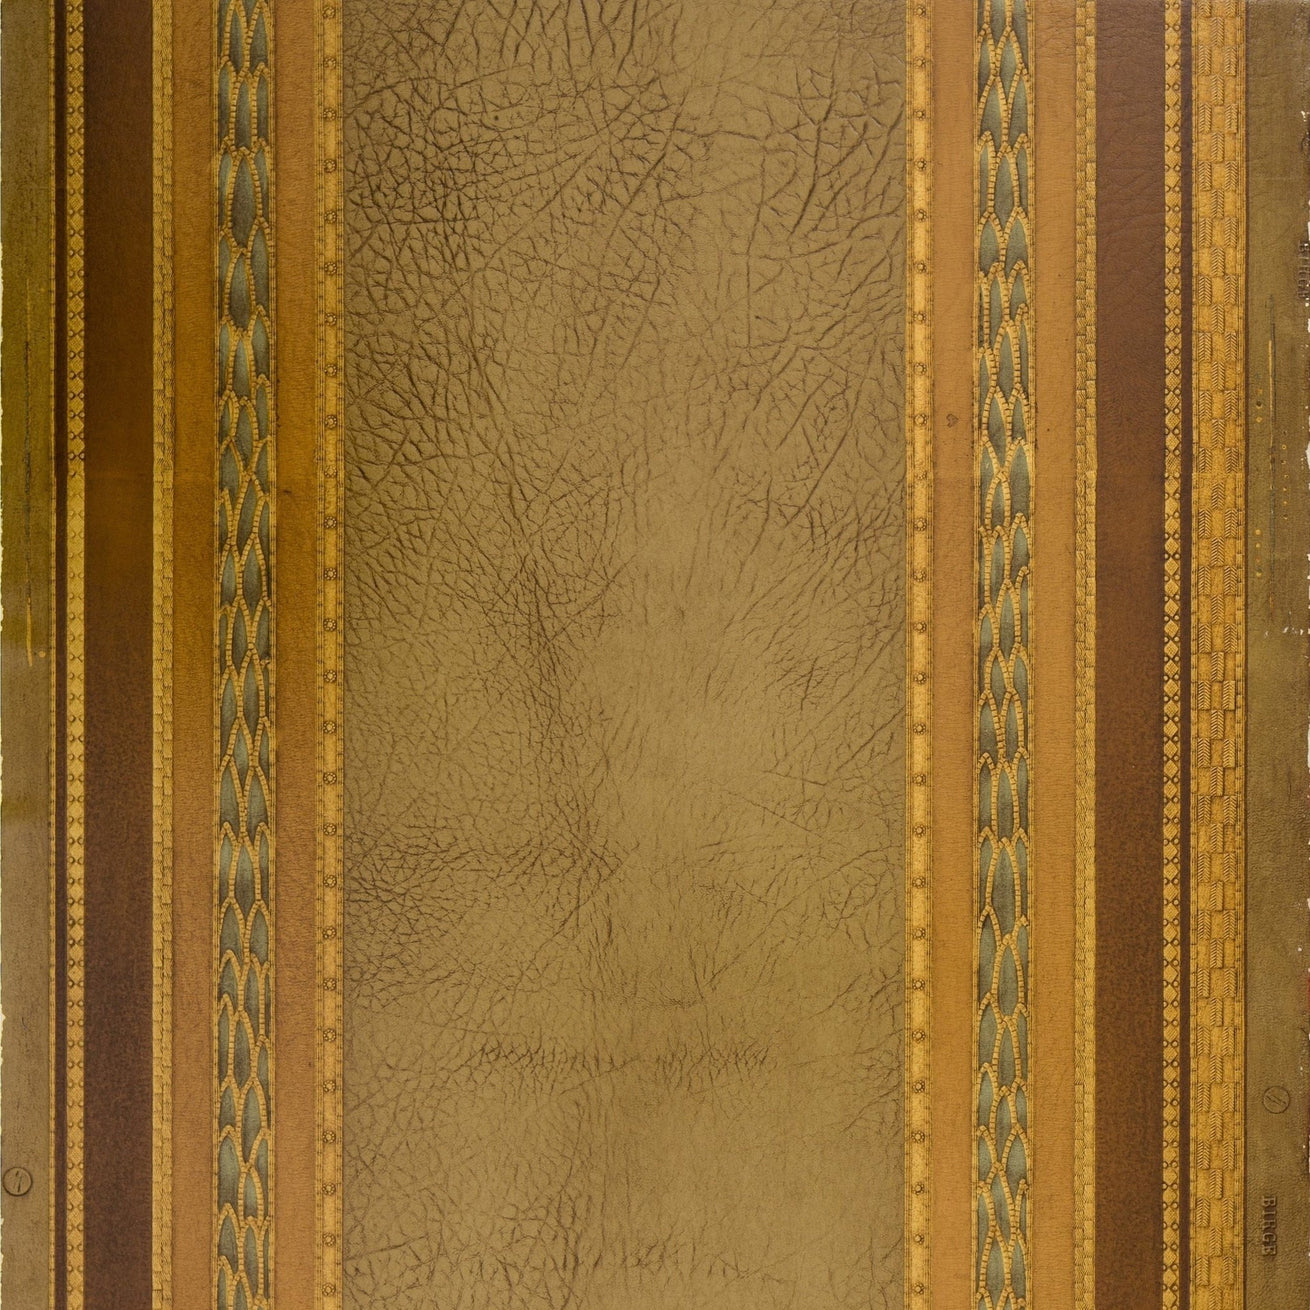 Leather with Bay Leaf Borders - Antique Wallpaper Remnant